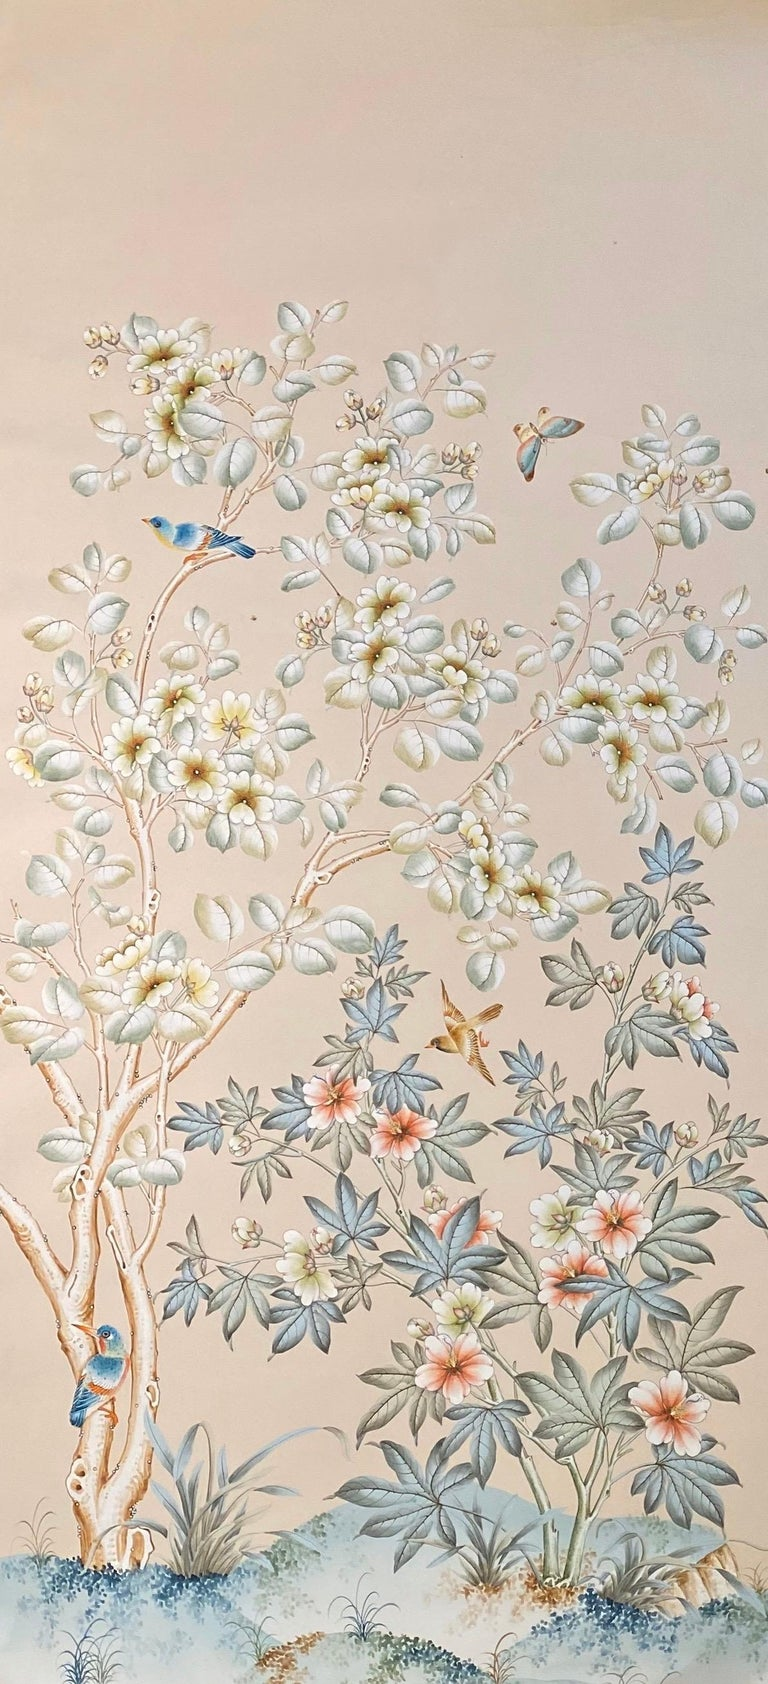 Two gorgeous and unique hand painted panels by Gracie, the firm known for its exquisitely detailed wallpaper, since 1898.